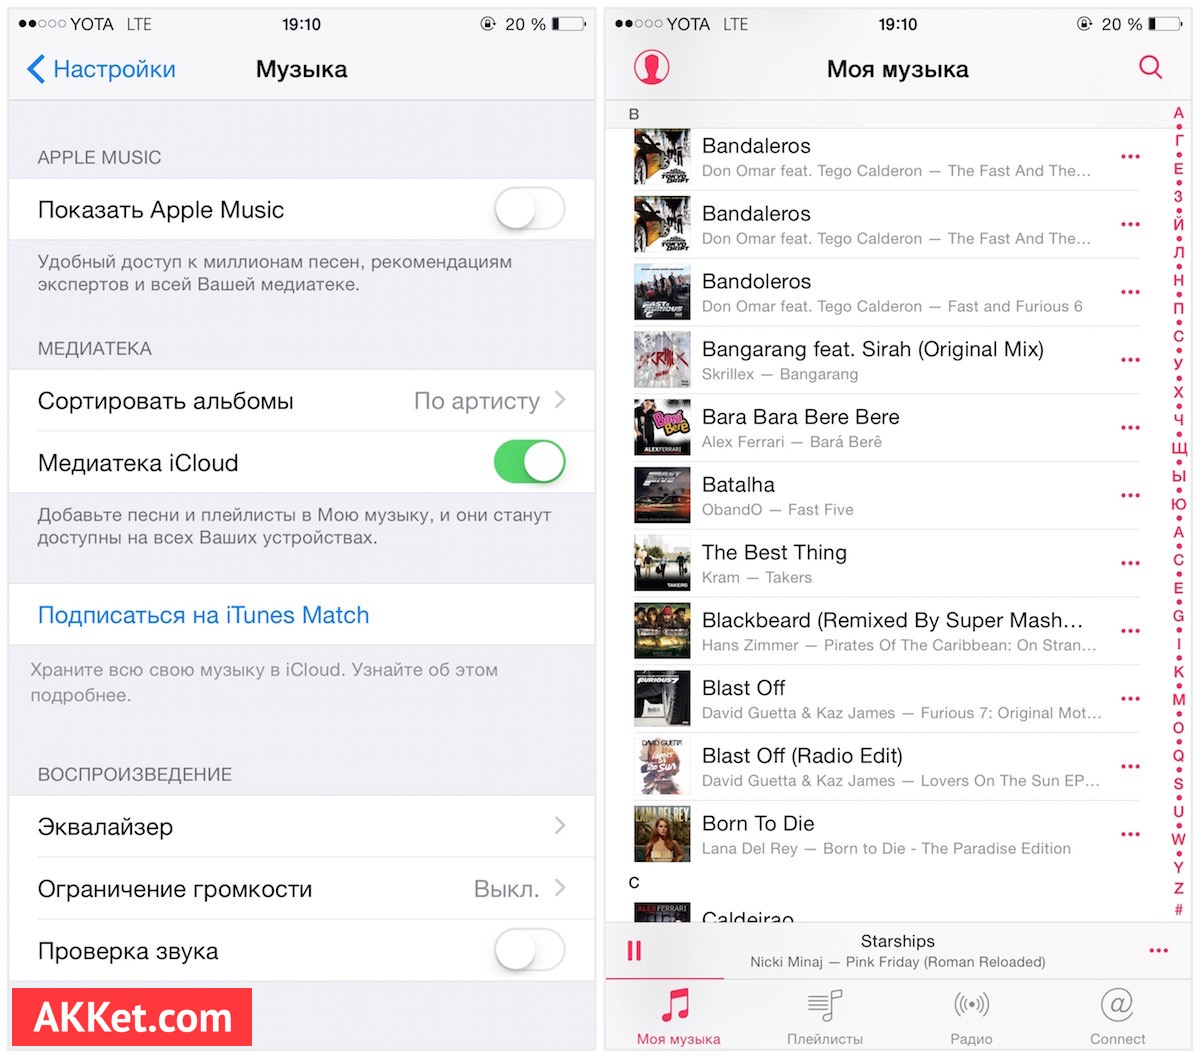 Apple Music iOS 8 IOS 9 iPad Iphone iPdo akket.com 2